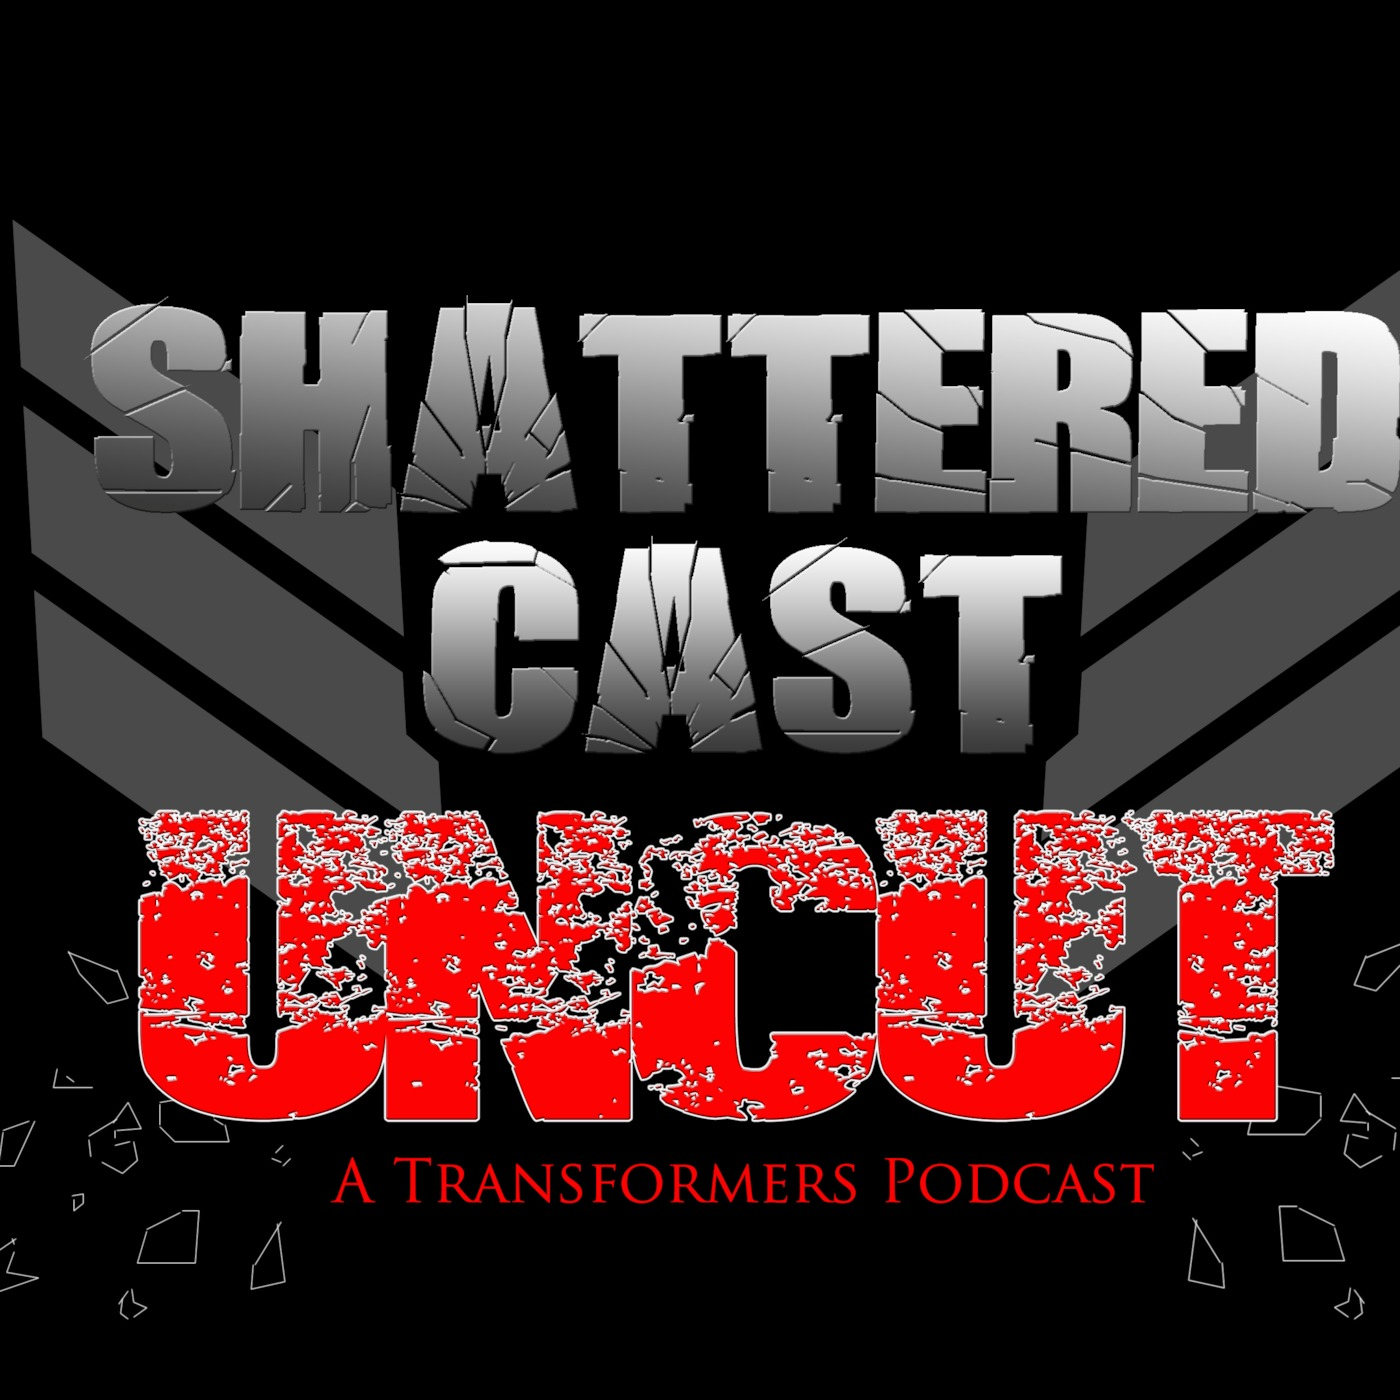 Shattered Cast's Podcast